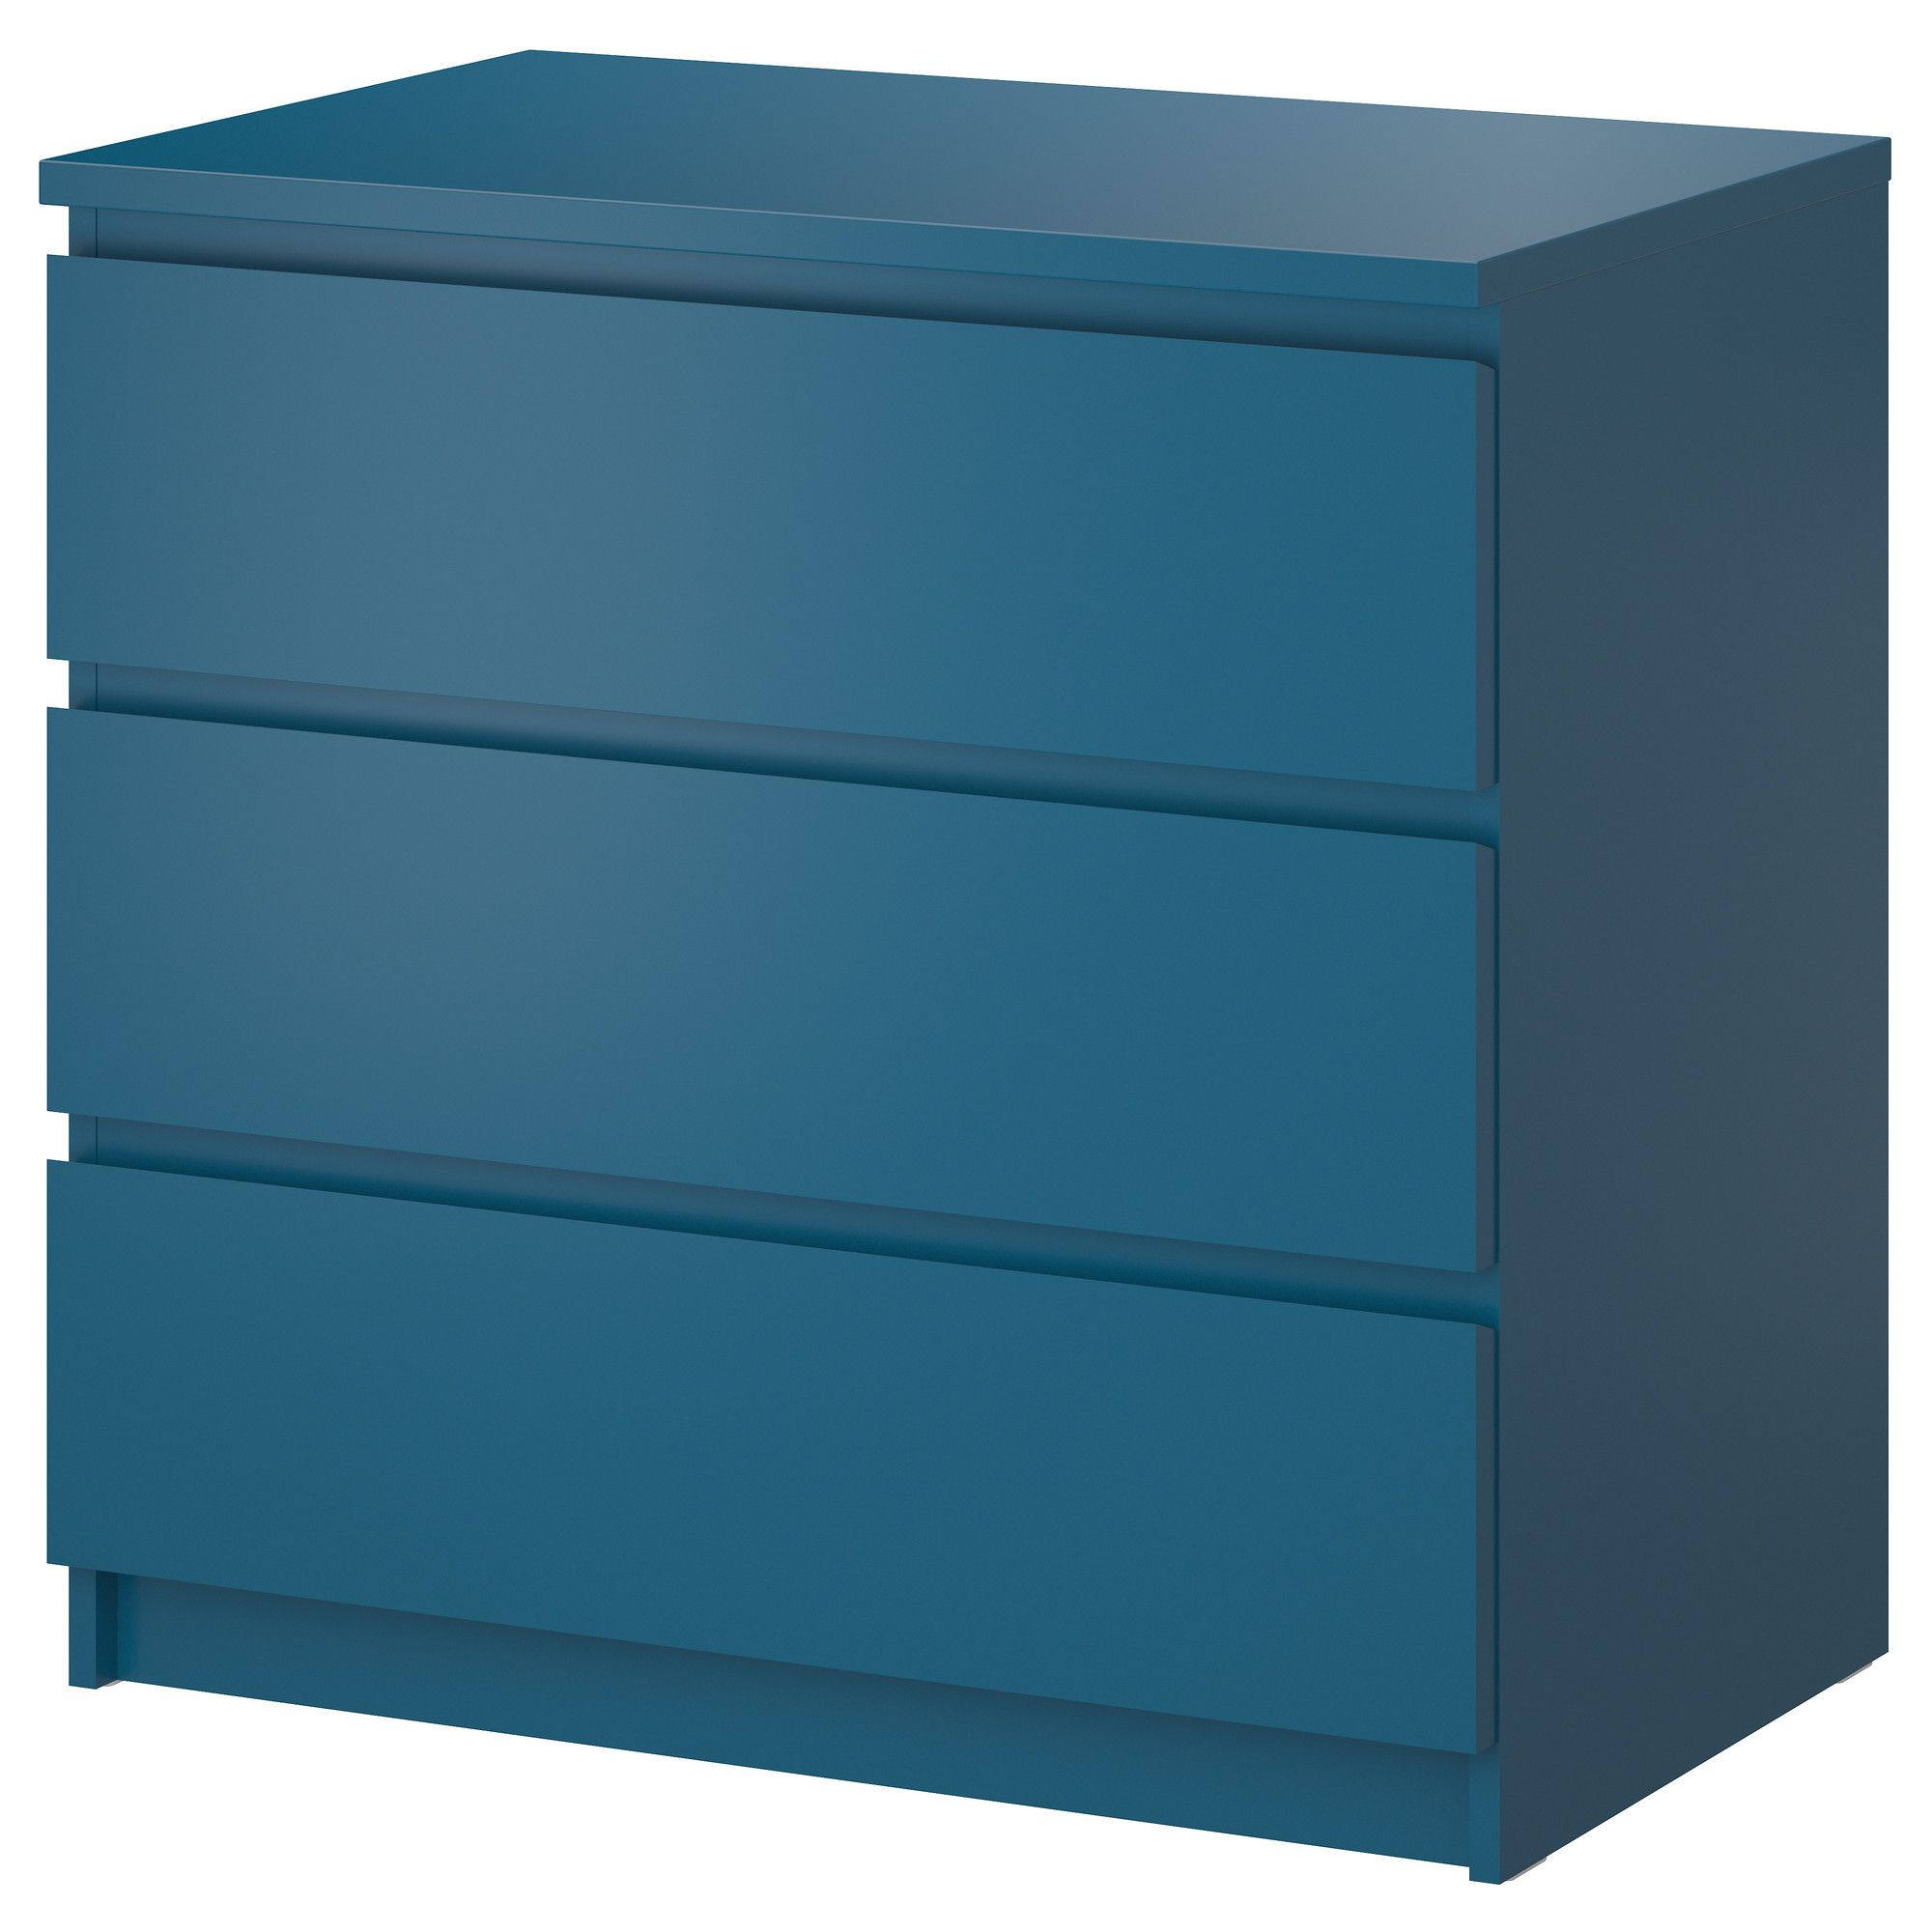 malm 3 drawer chest turquoise 31 5 8x30 3 4 ikea for in the closet girls 39 room. Black Bedroom Furniture Sets. Home Design Ideas